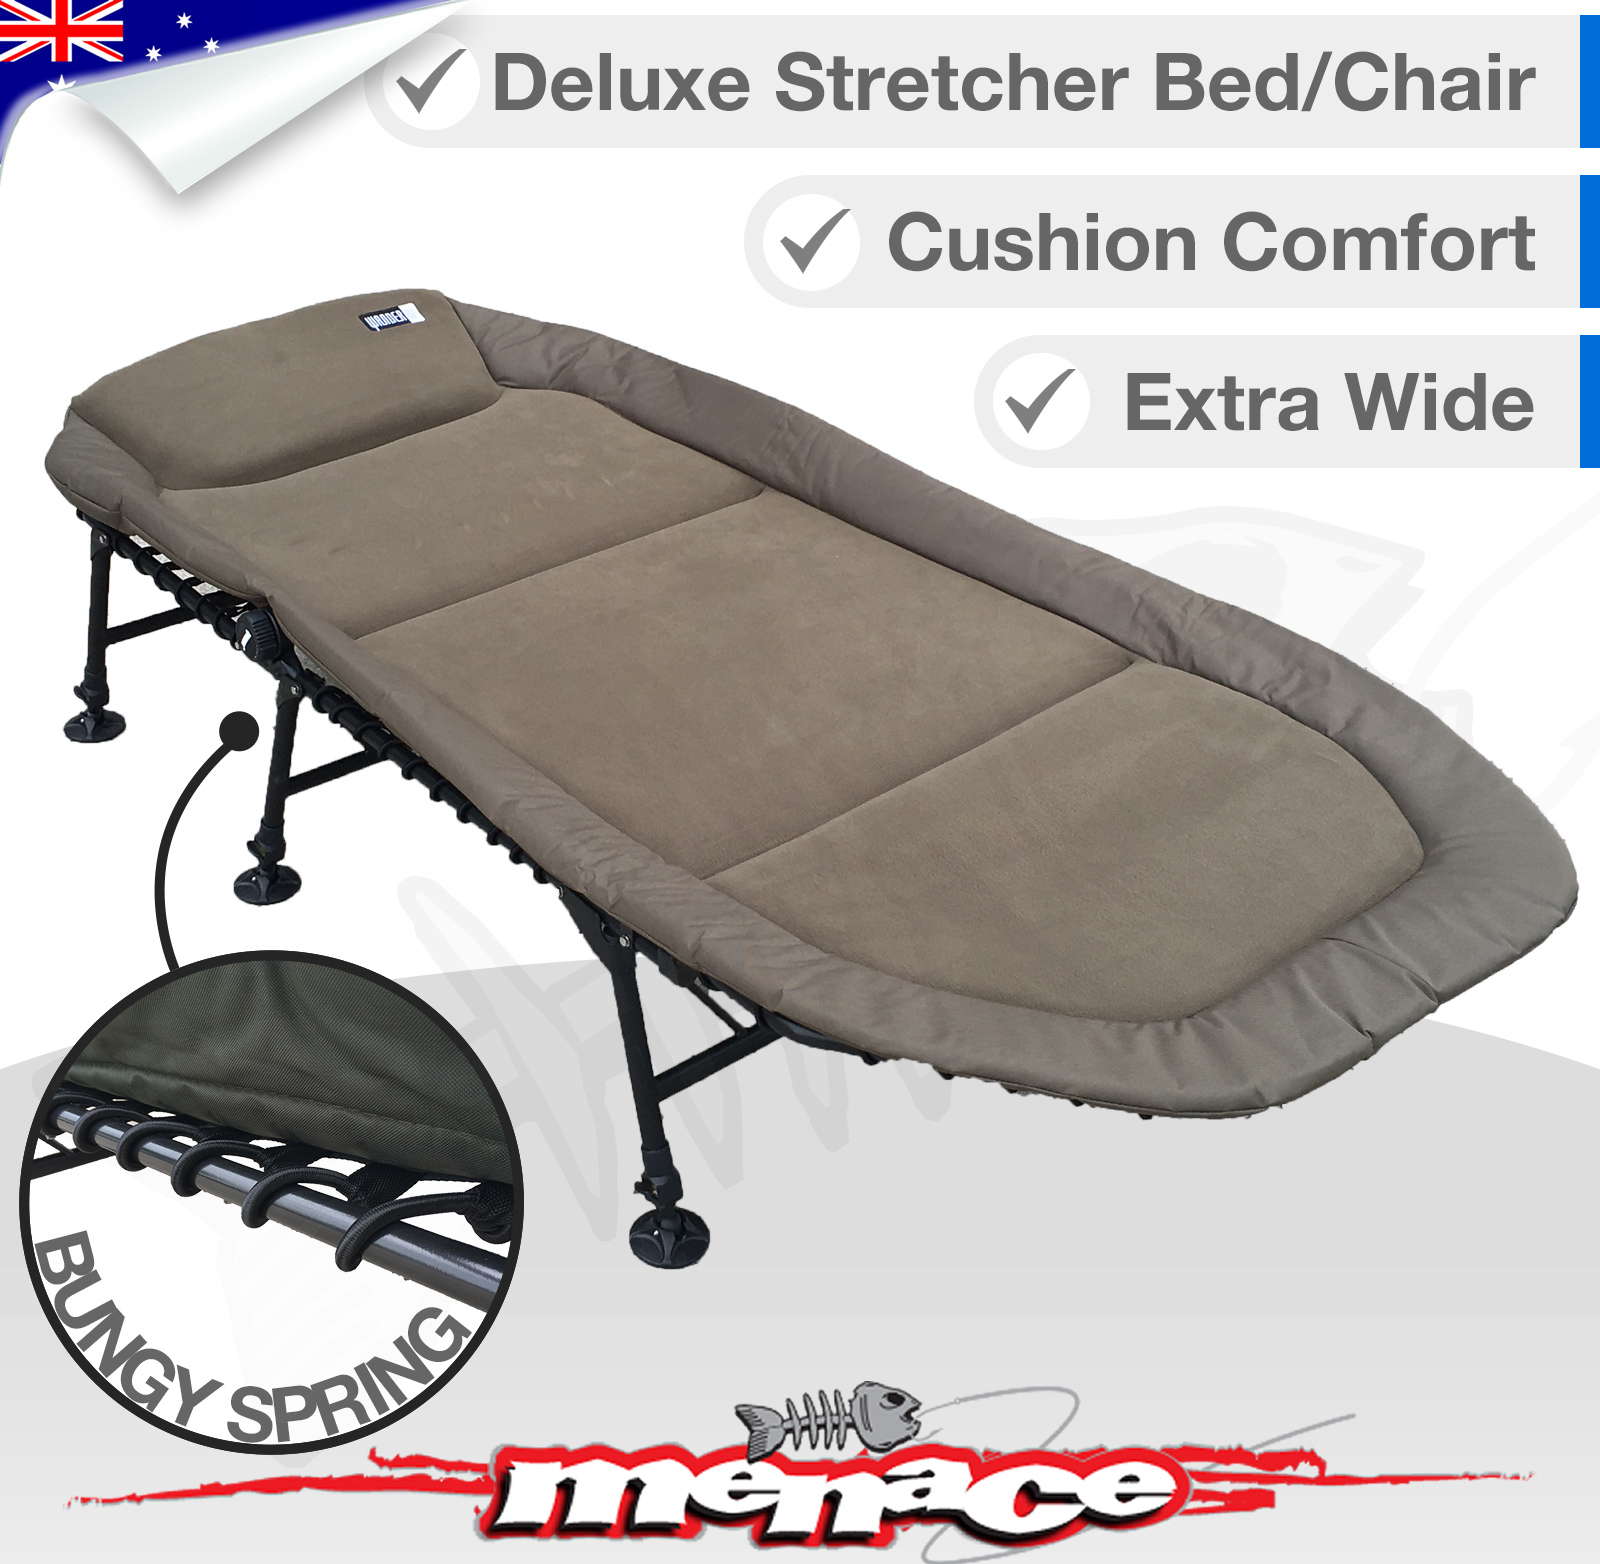 Folding Sleeping Chair Wander Oz Fold Out Stretcher Sleeping Bed Chair Extra Wide